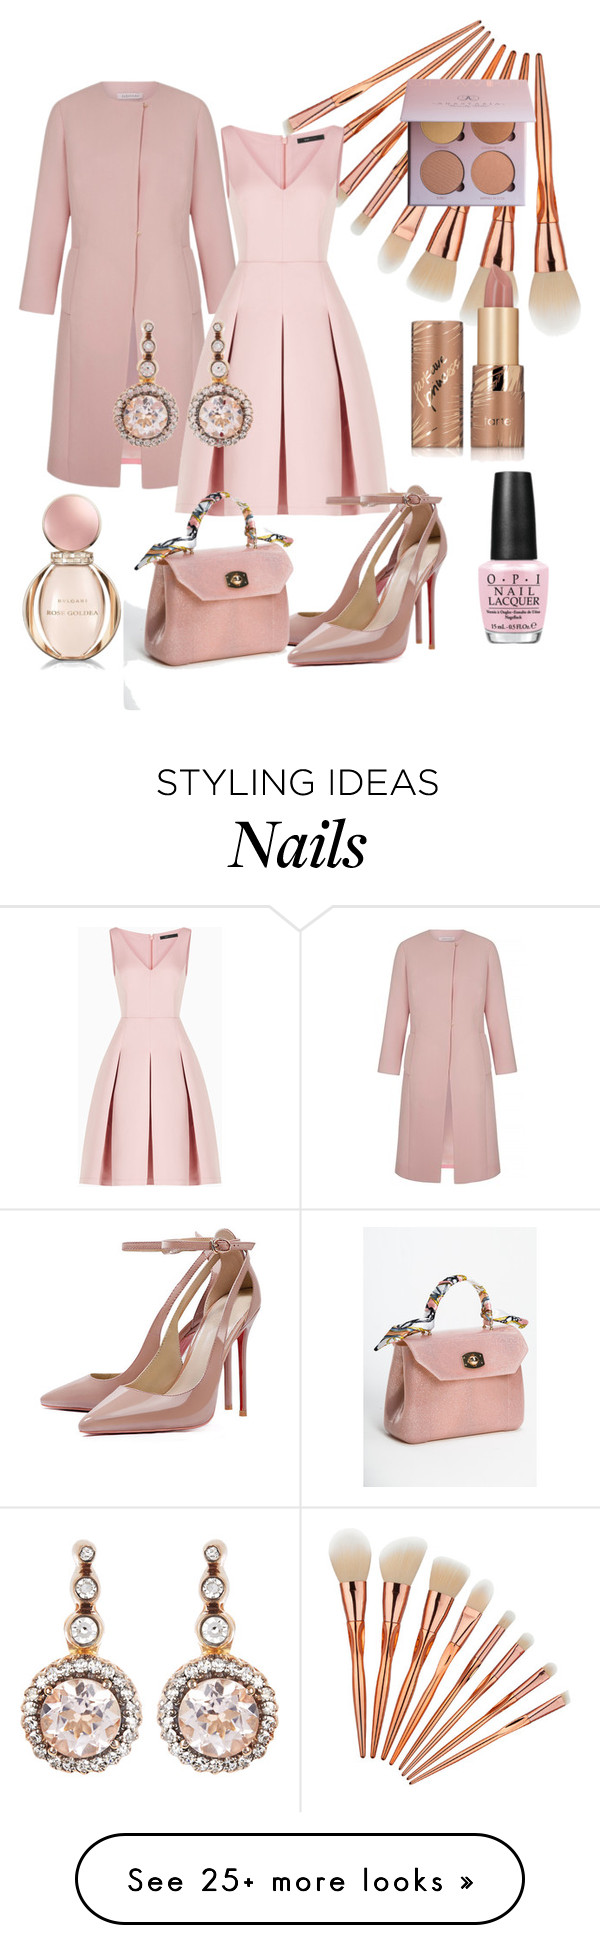 """Monochrome In Pastel Pink"" by klm62 on Polyvore featuring Bulgari, BCBGMAXAZRIA, tarte, OPI and Selim Mouzannar"